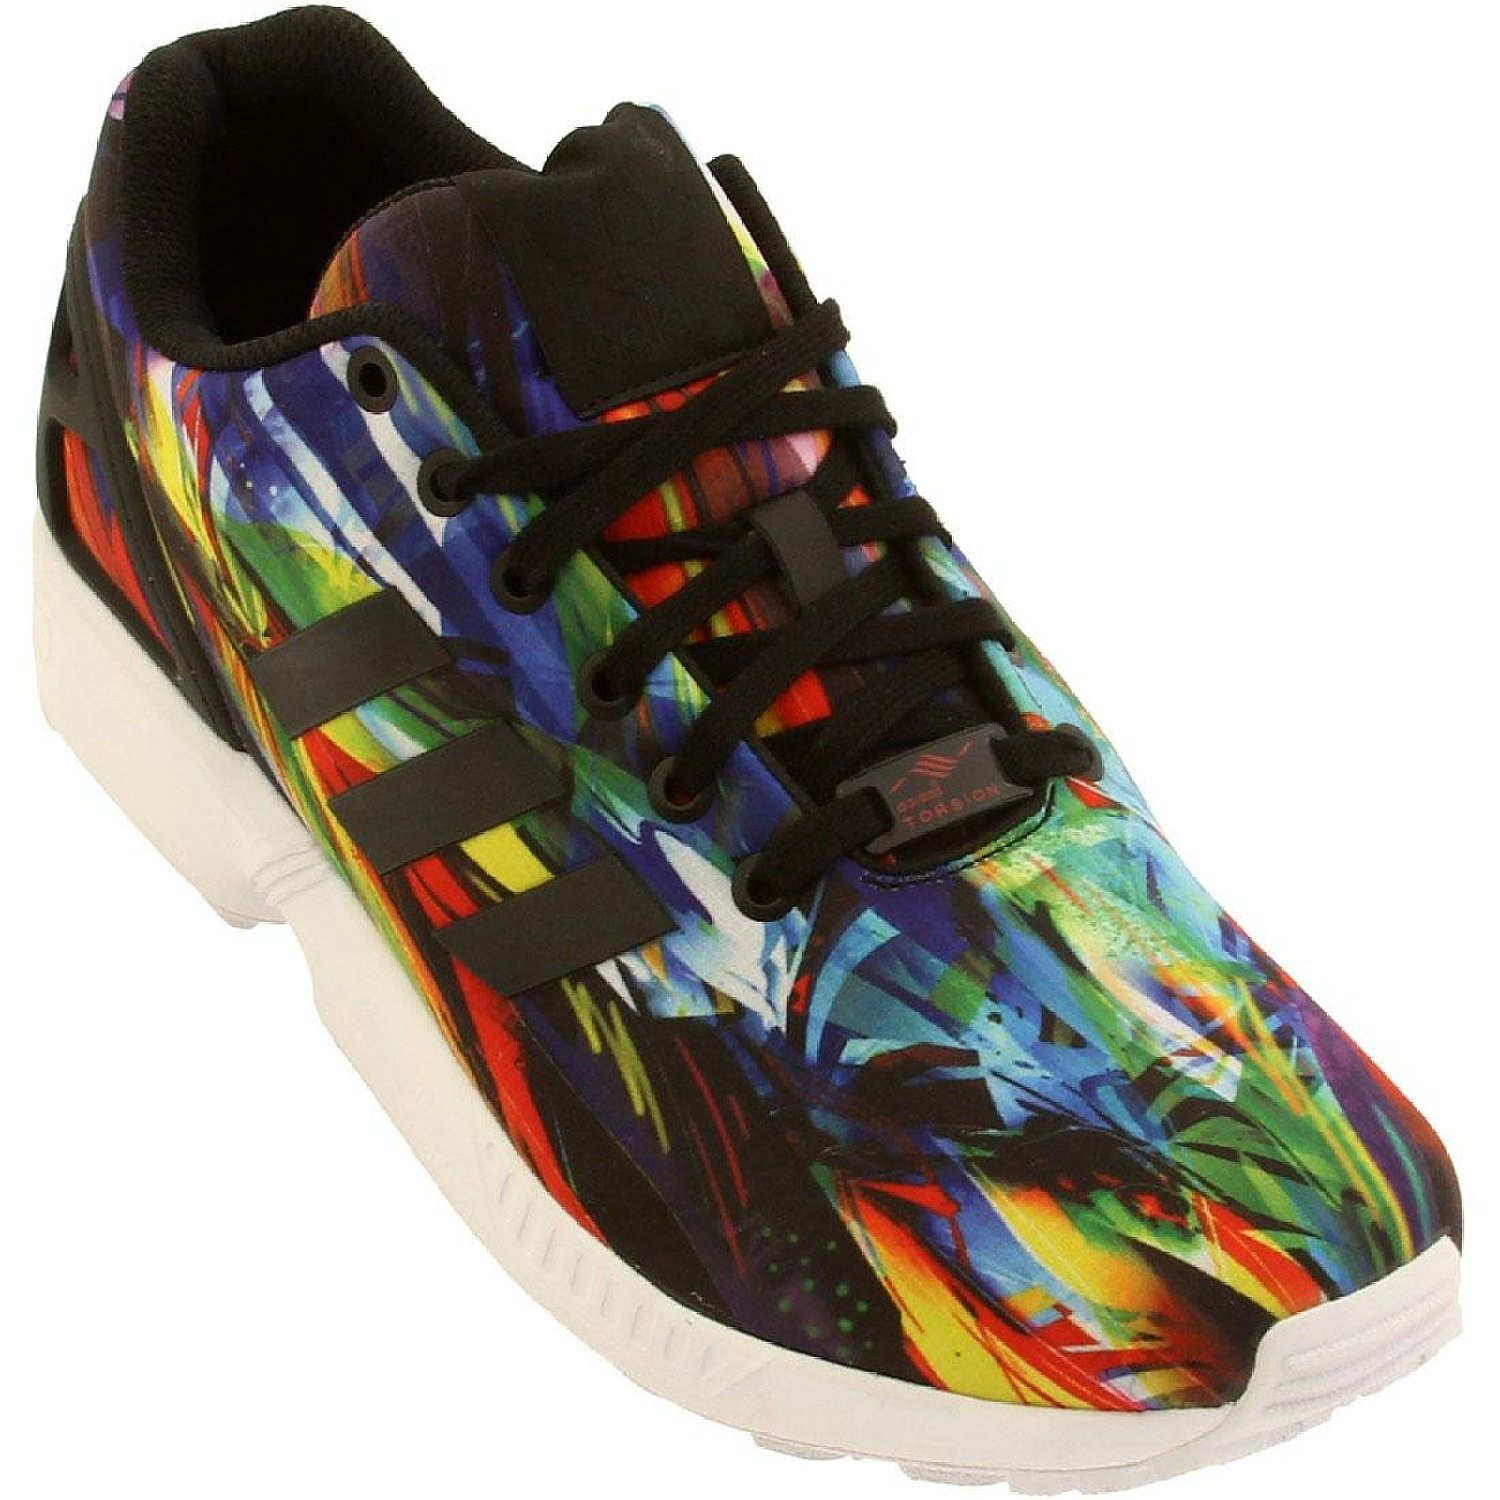 a647c532723c6 Get Quotations · adidas Men s ZX Flux Synthetic Running Shoes